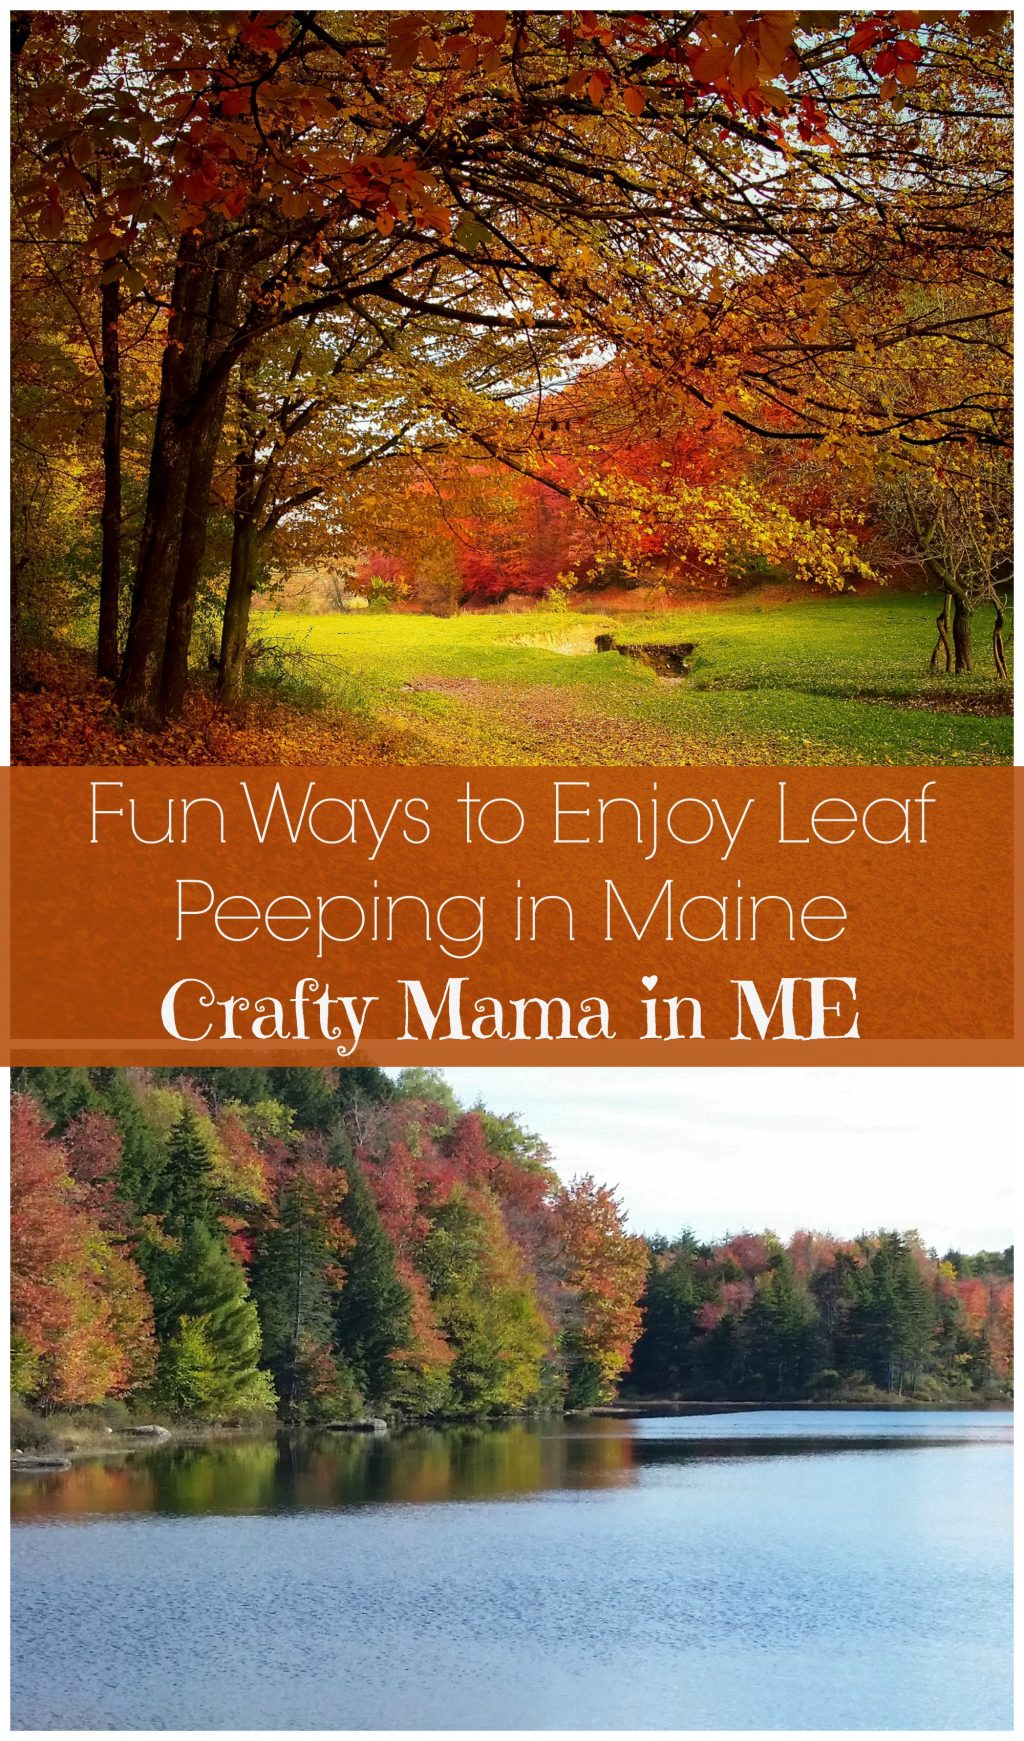 Fun Ways to Enjoy Leaf Peeping in Maine